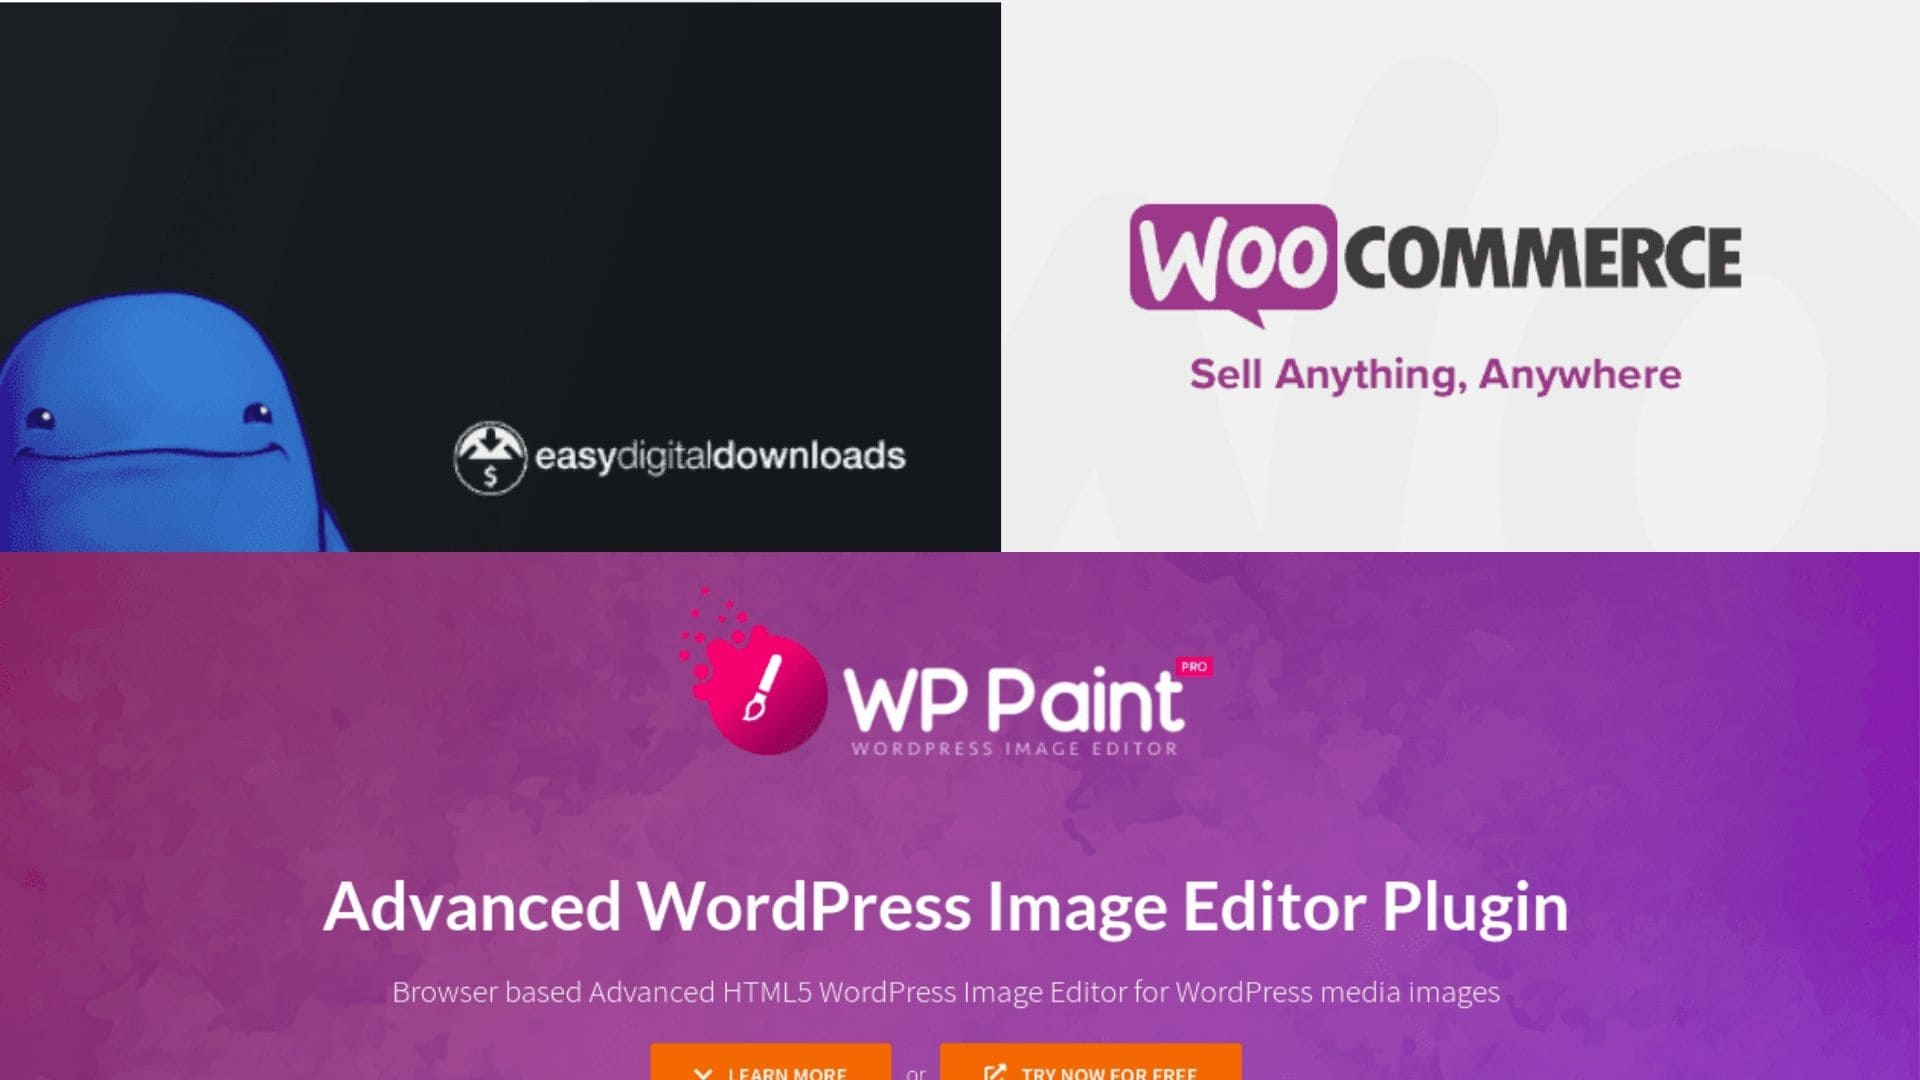 WordPress E-Commerce Plugin for Smart Workability